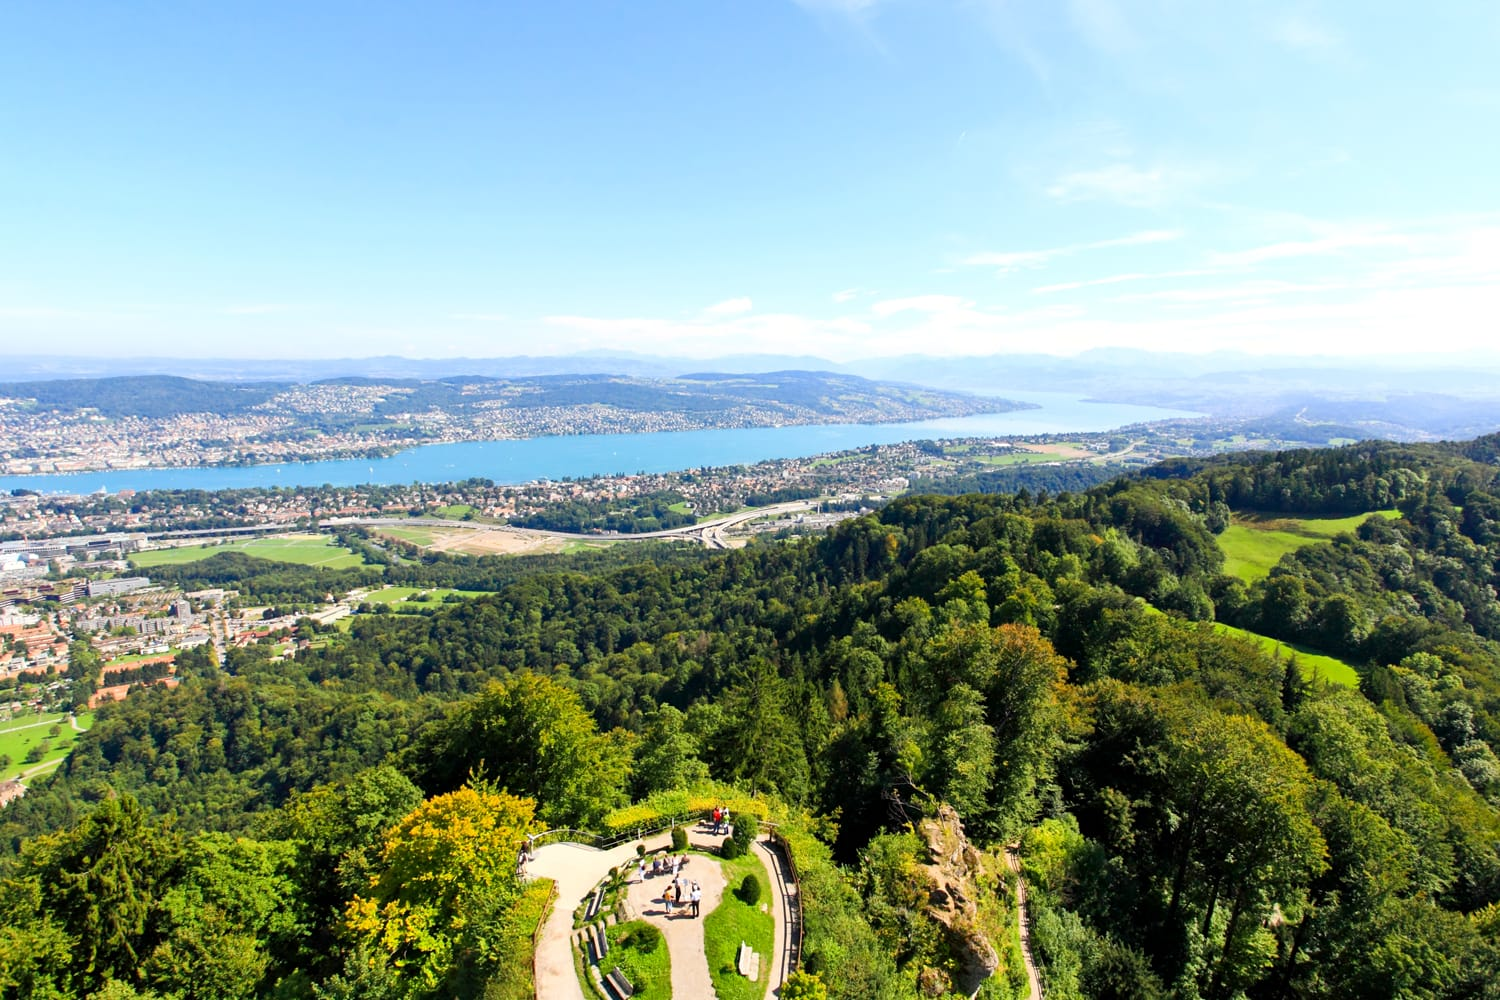 The aerial view of Lake Zurich from the top of Mount Uetliberg